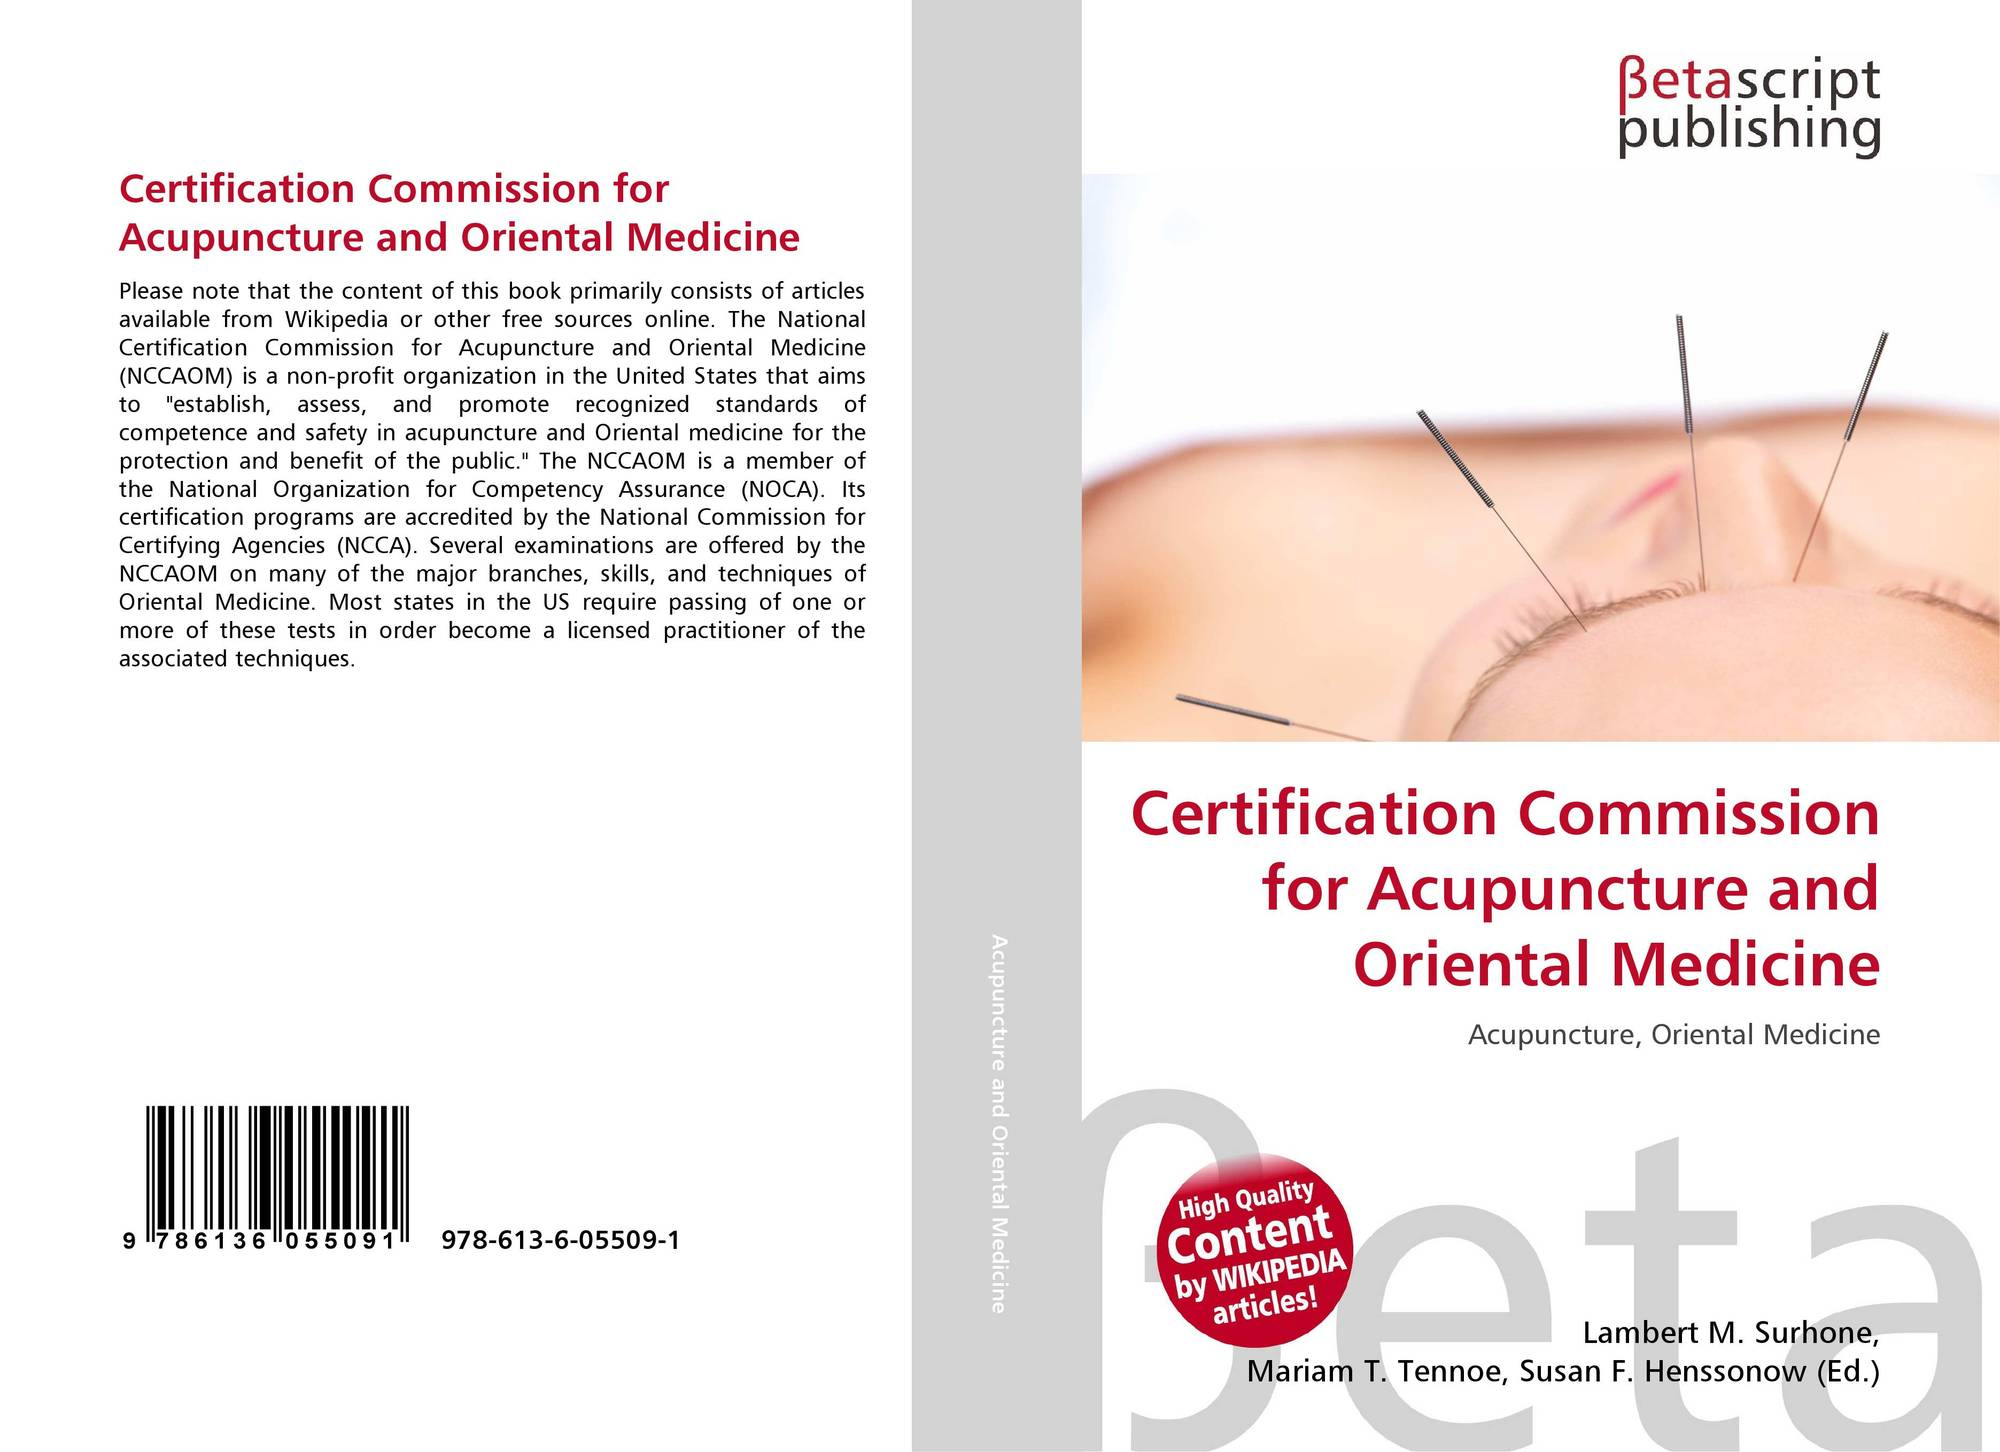 Certification Commission for Acupuncture and Oriental